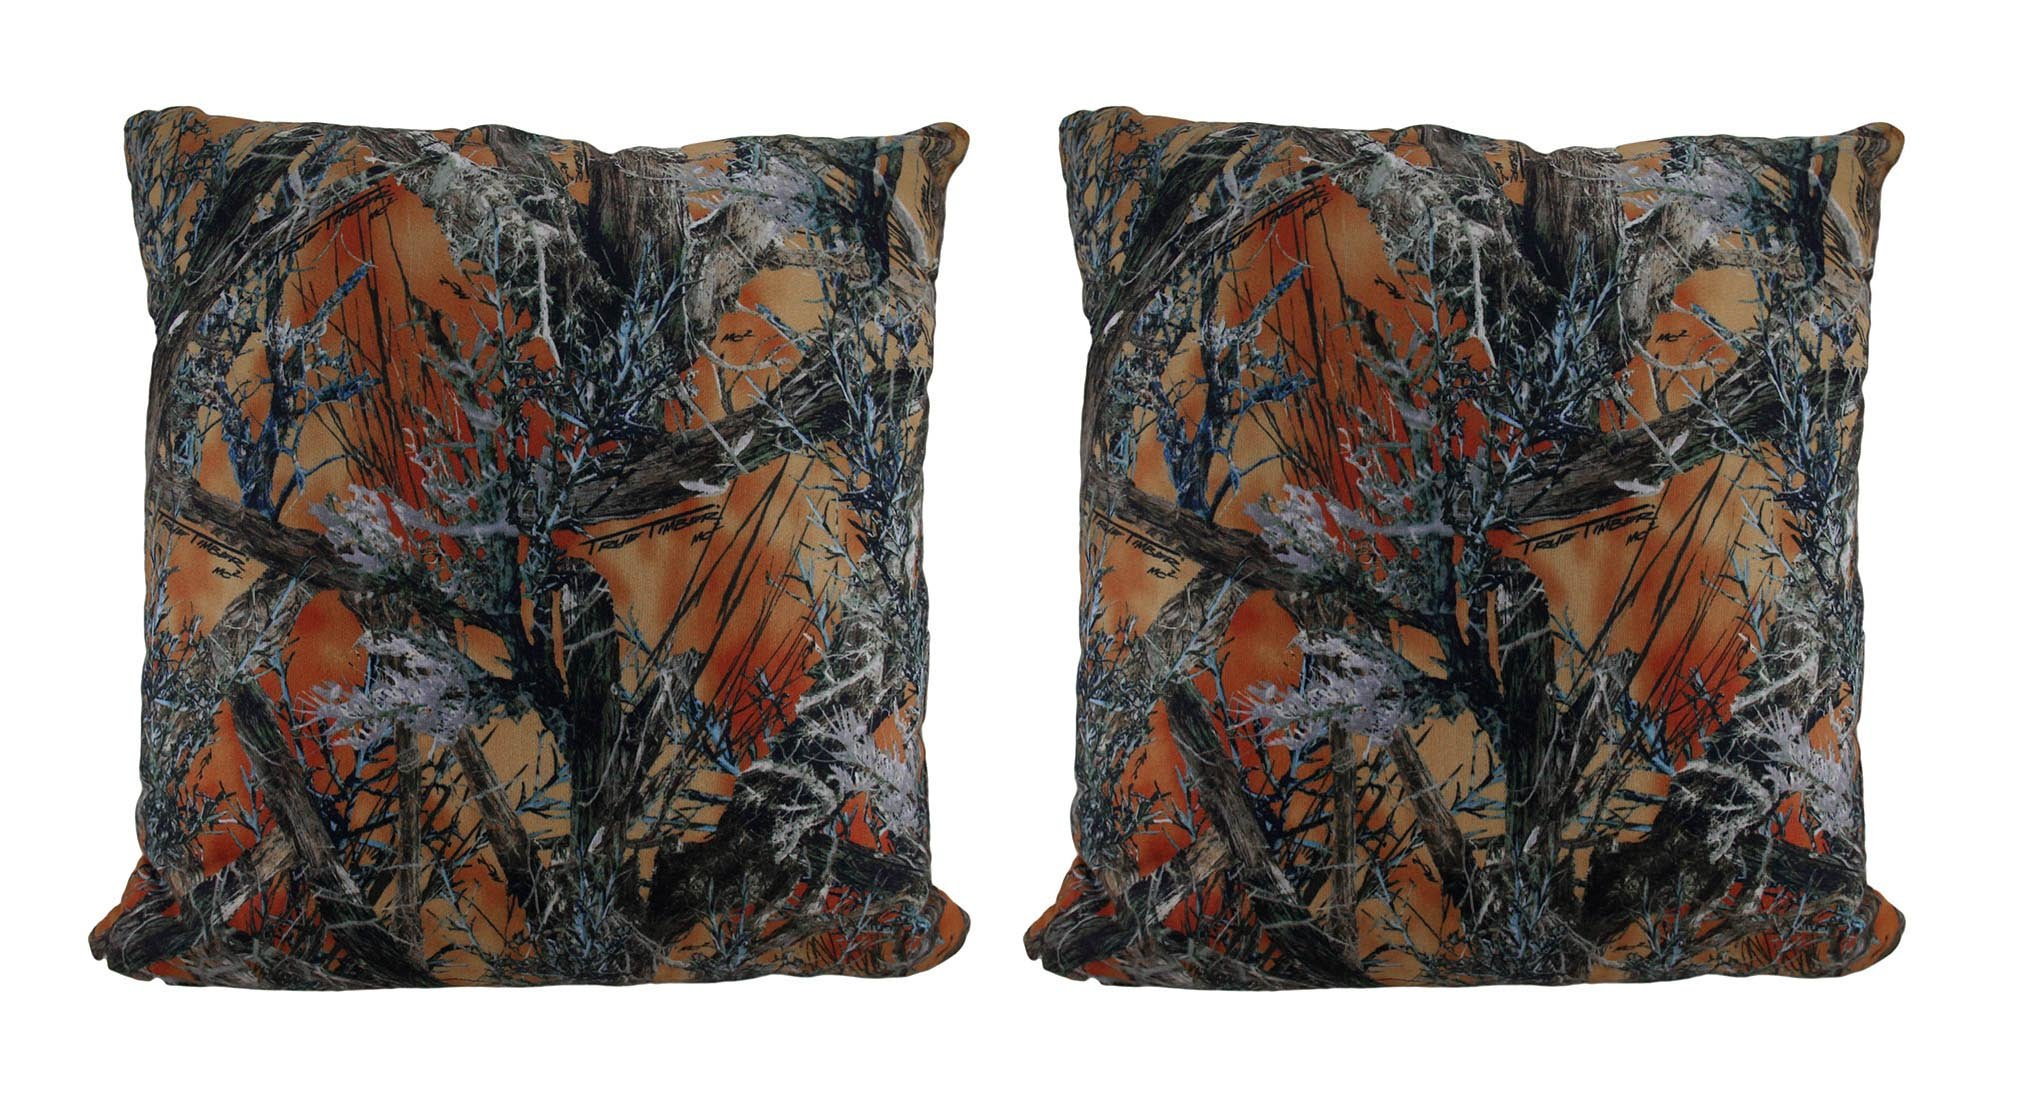 Zeckos Polyester Throw Pillows Orange Mc2 True Timber Camo Sherpa Microfiber Set of 2 Throw Pillows 18 X 7 X 18 Inches Orange